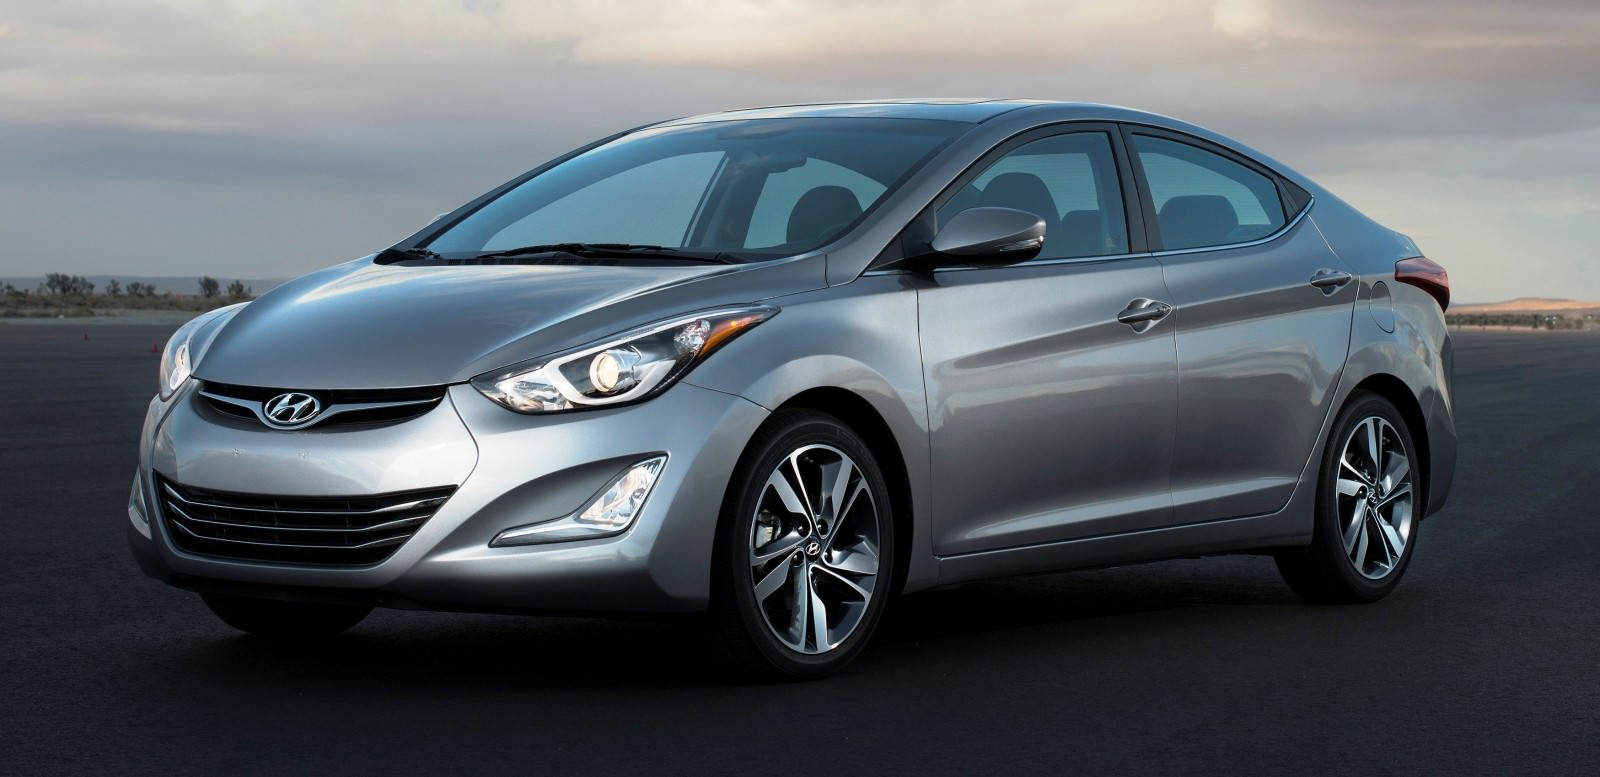 2015 Hyundai Elantra Sedan Brings Classy LED and Tech Updates  1